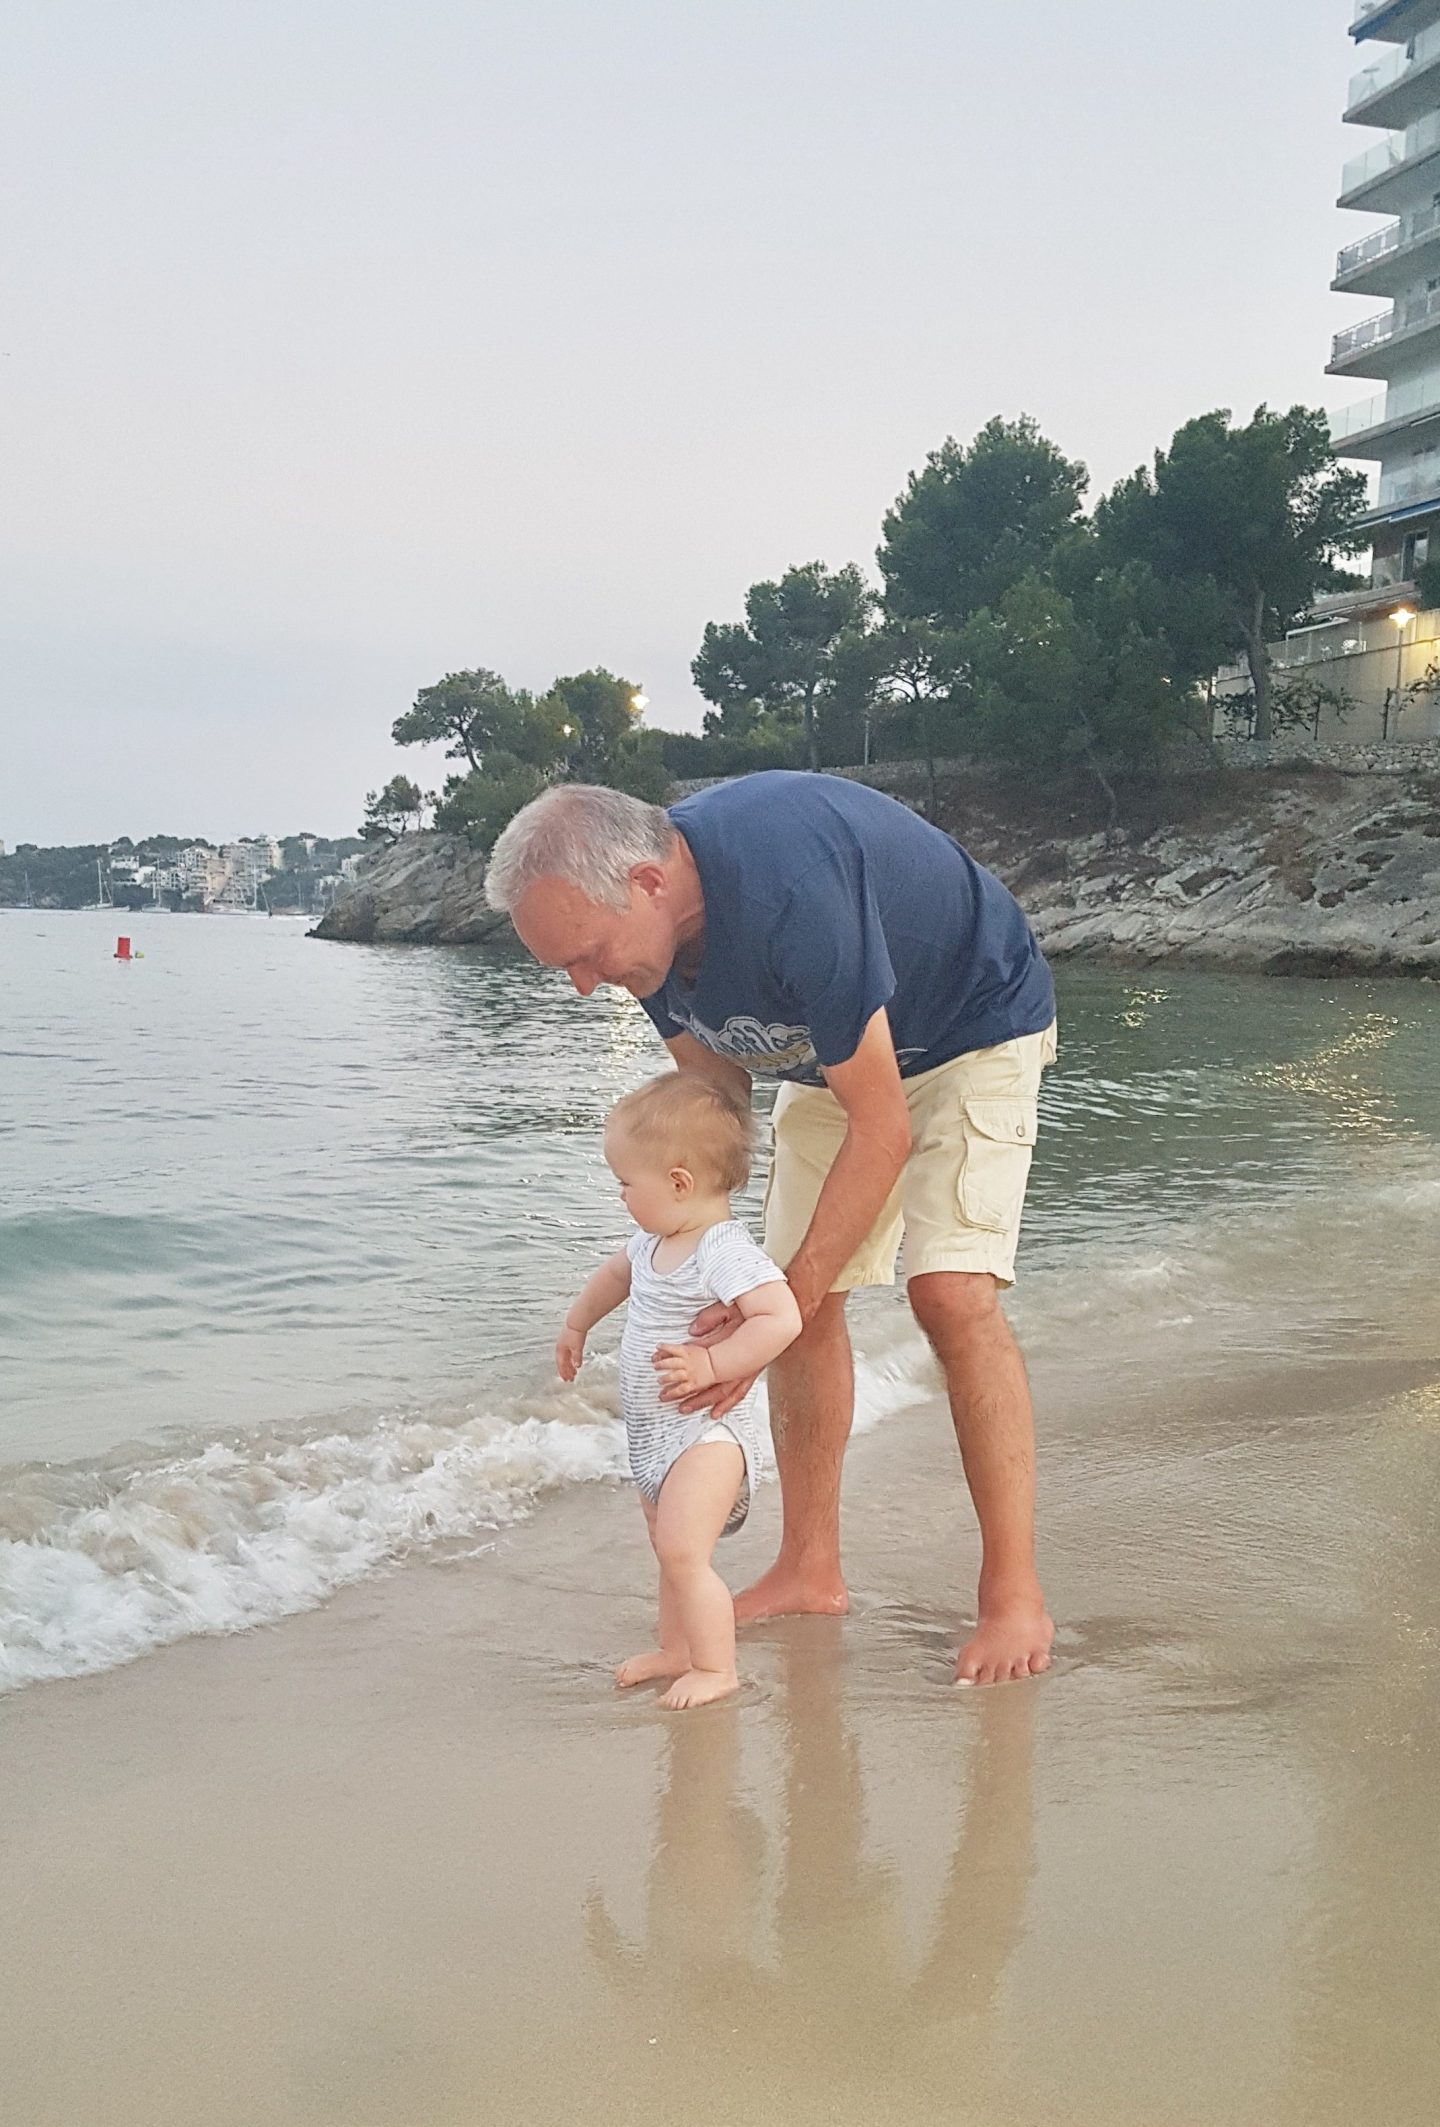 man and baby on beach at dusk